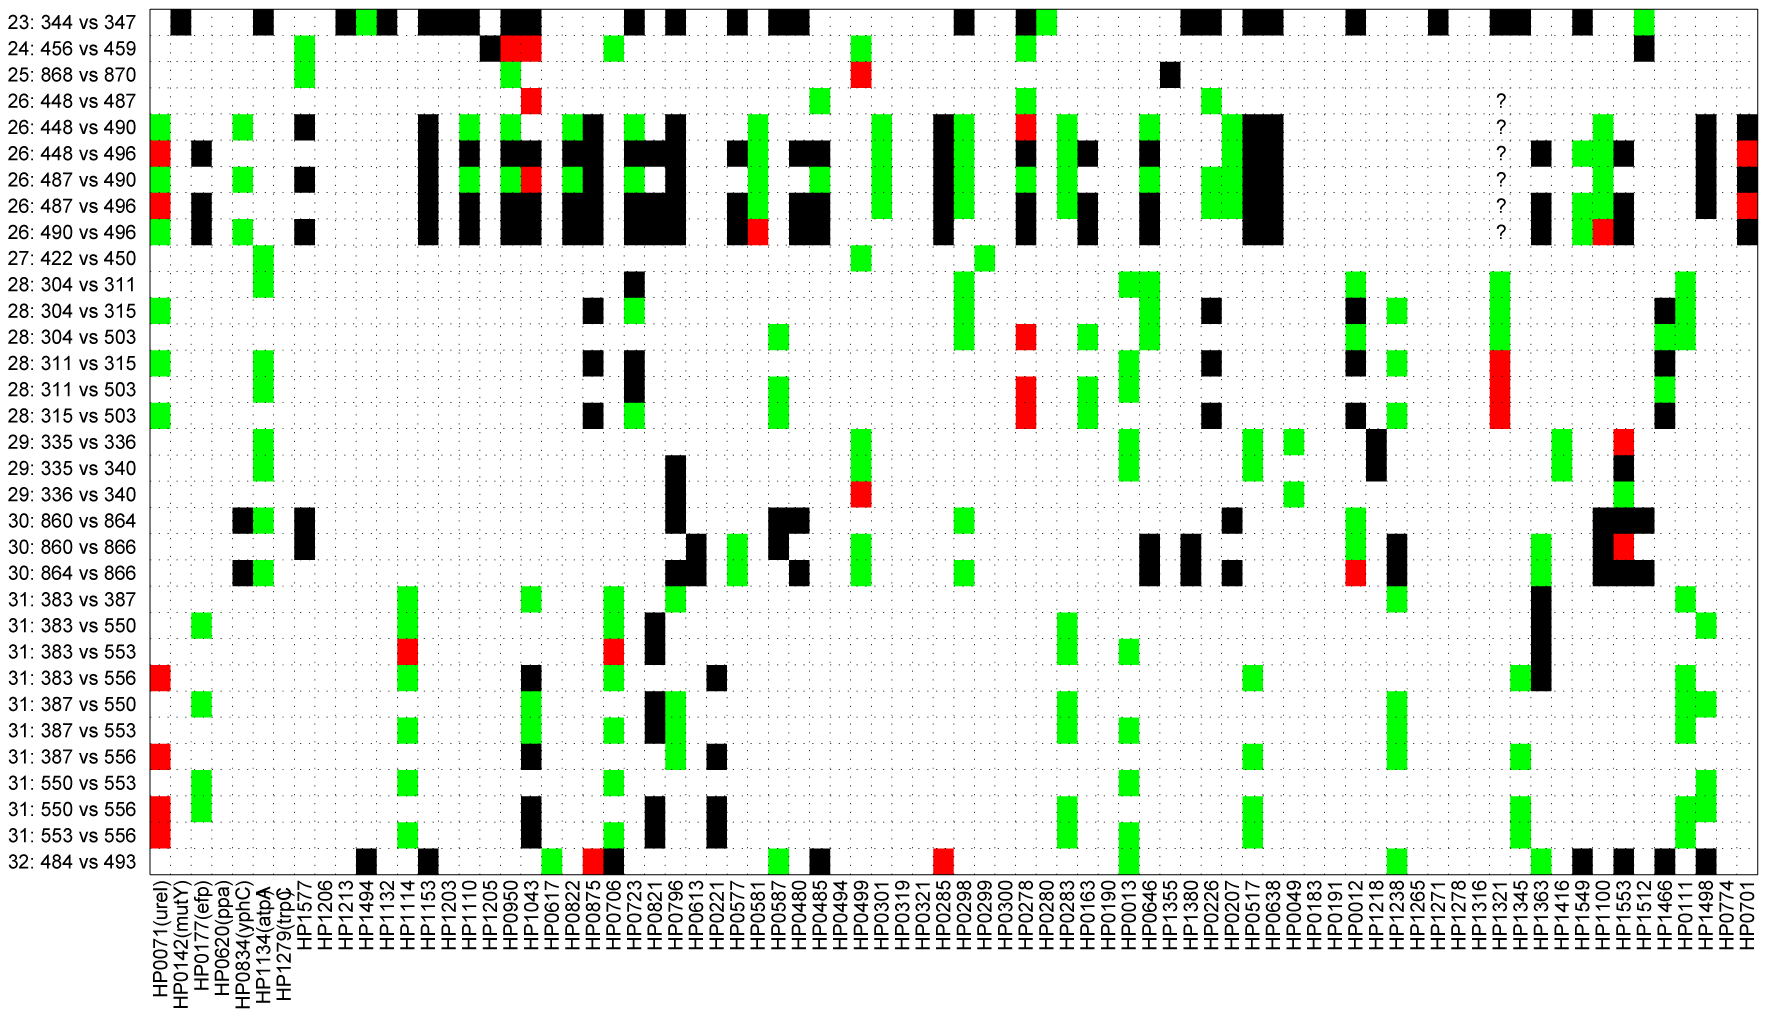 Pair-wise comparison of sequences from 29 isolates acquired from members of 10 families.